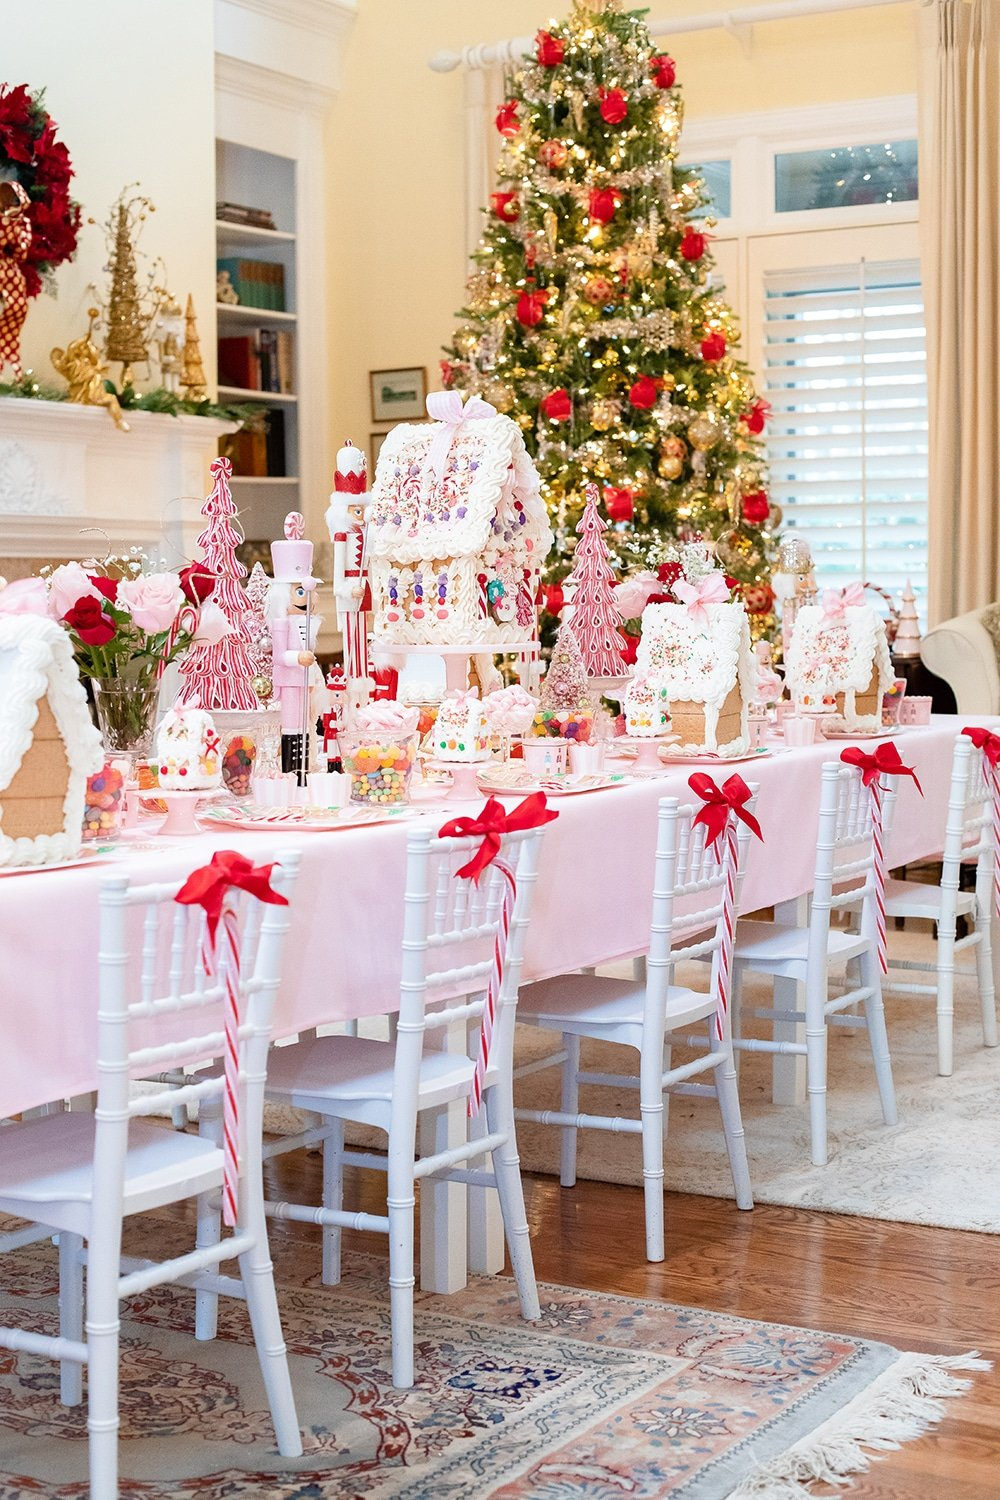 4th Annual Gingerbread House Tea Party